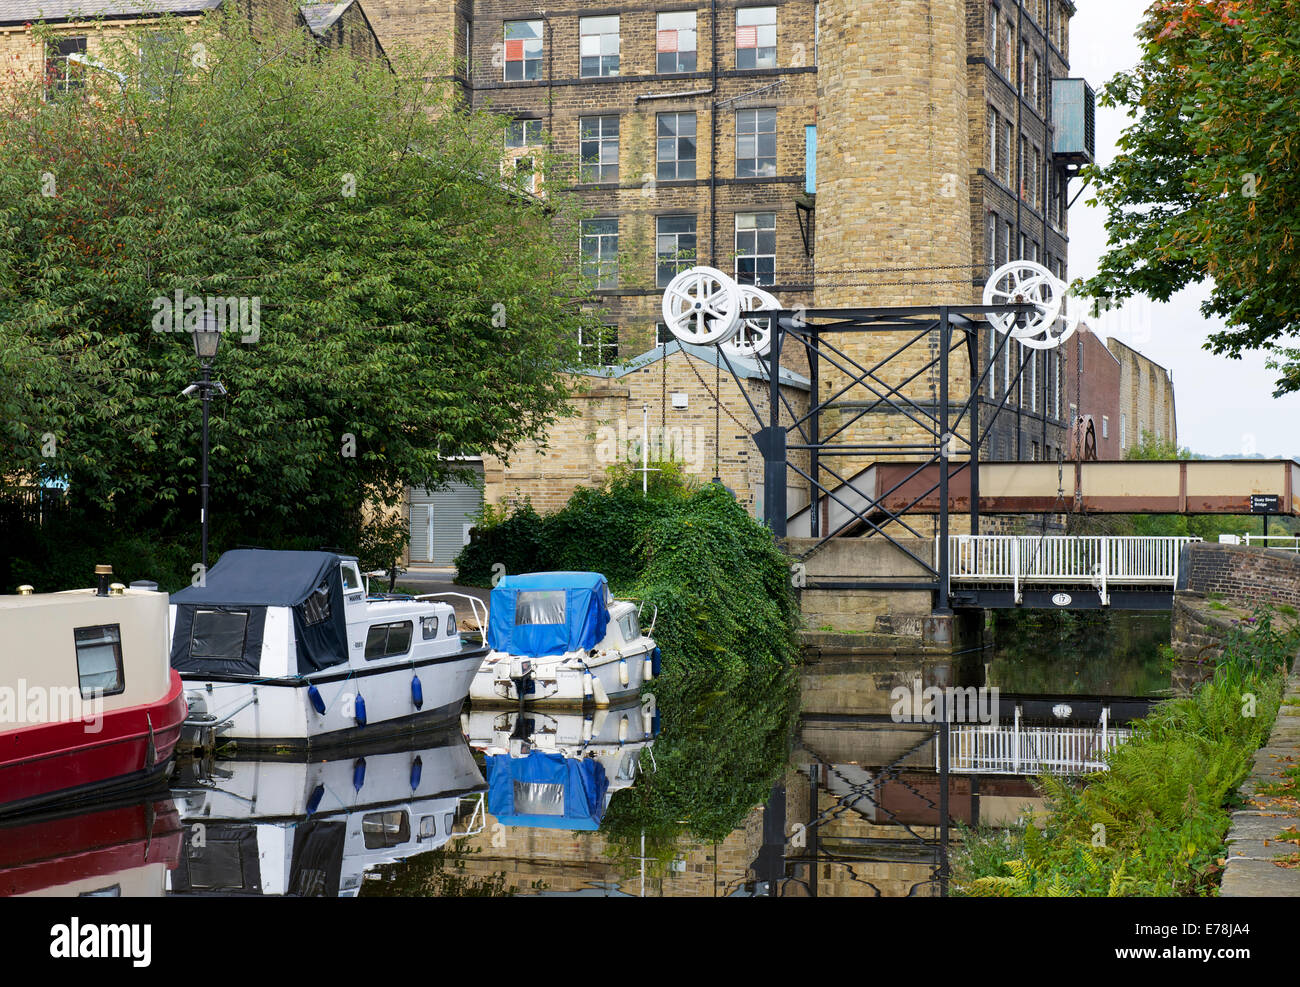 The Huddersfield Broad Canal in Huddersfield, West Yorkshire, England UK - Stock Image